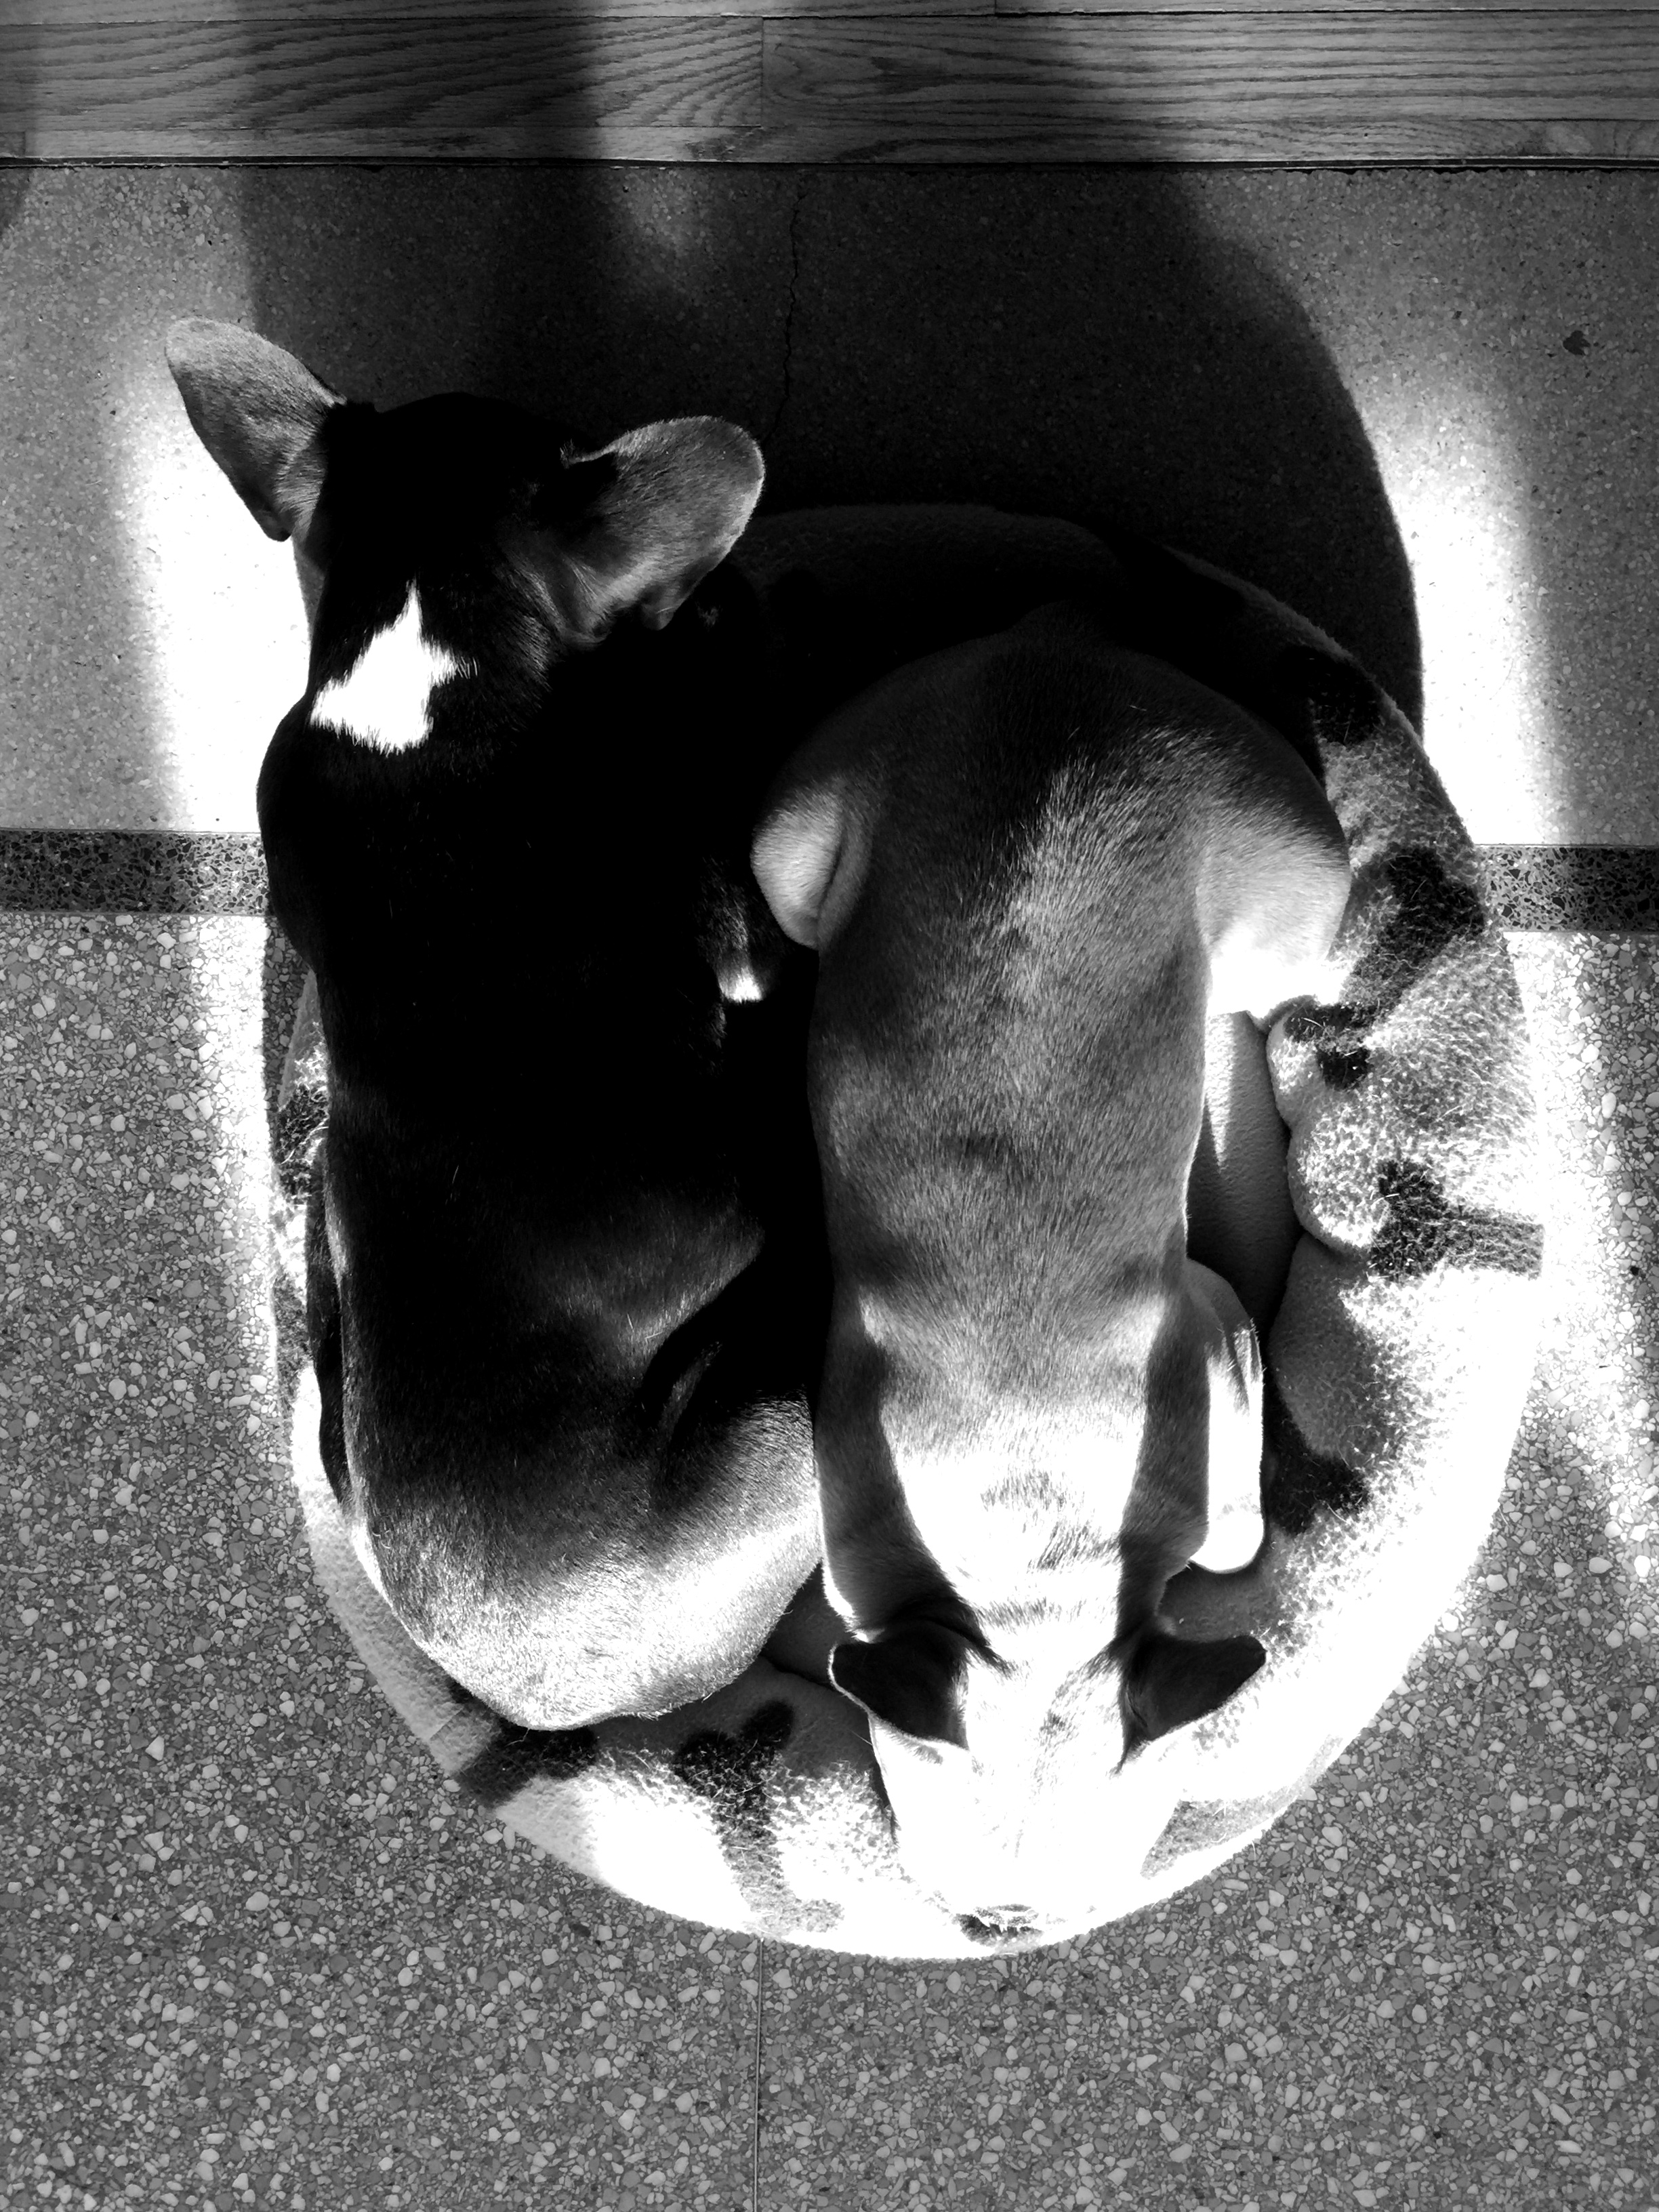 Nappingtimes with no rainbowparts! (black and white)